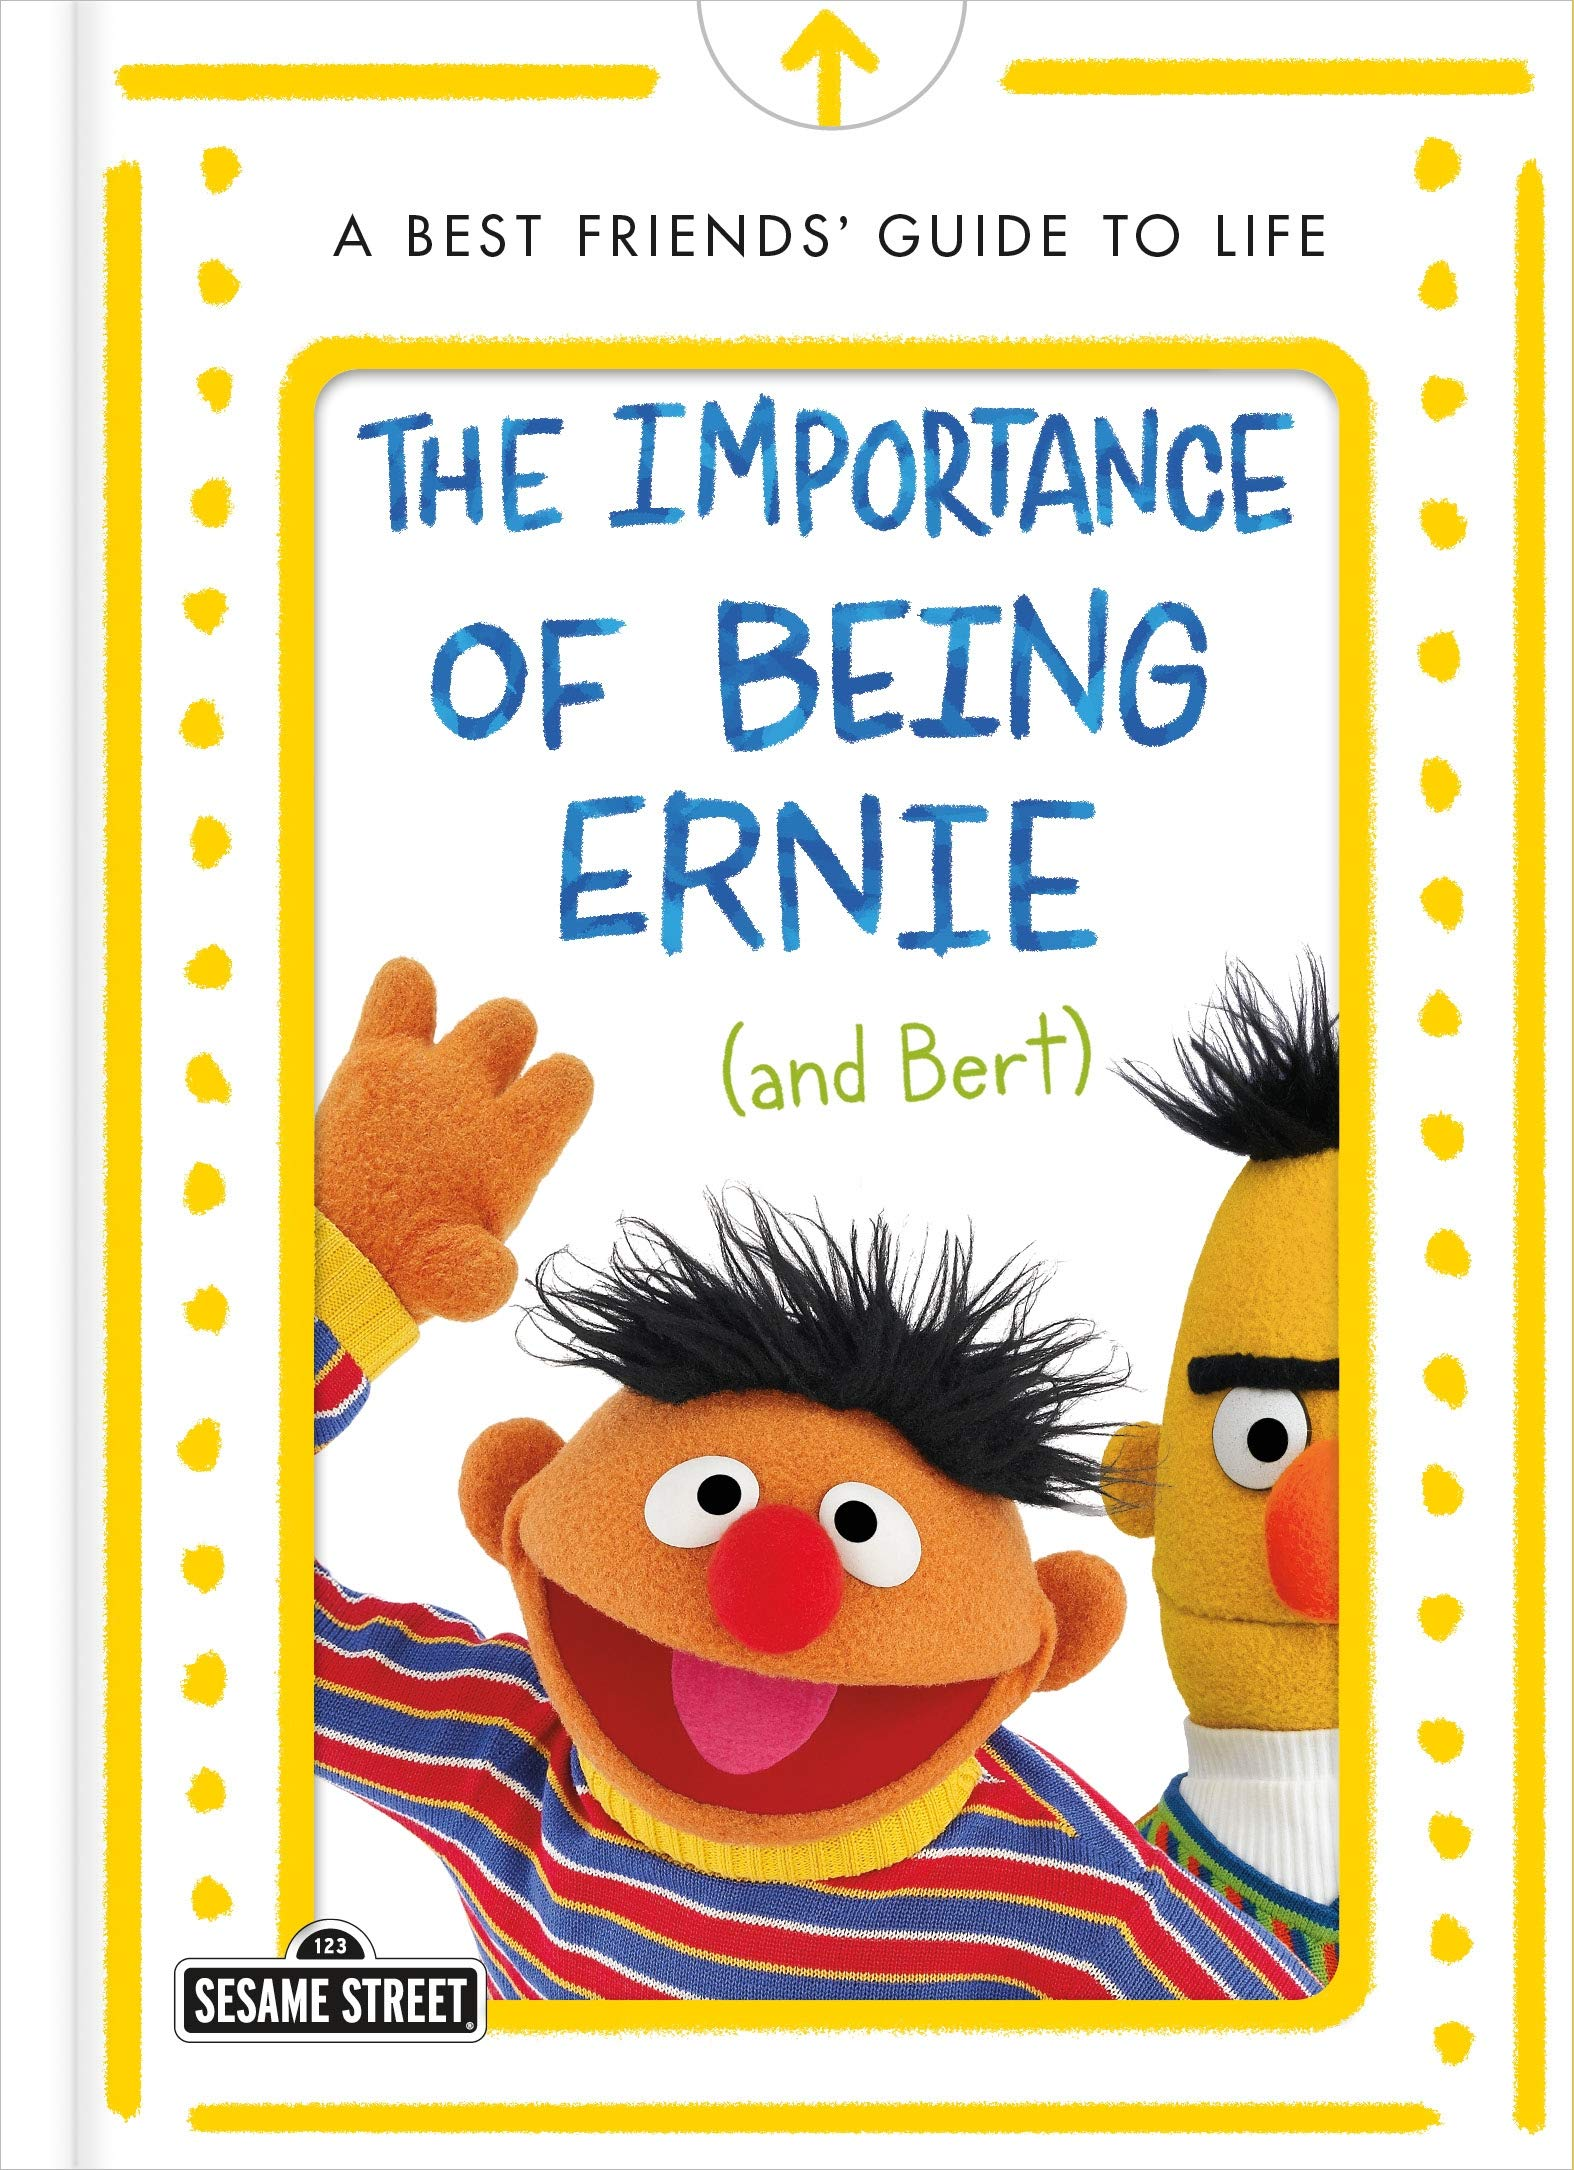 The Importance of Being Ernie (and Bert): A Best Friends' Guide to Life